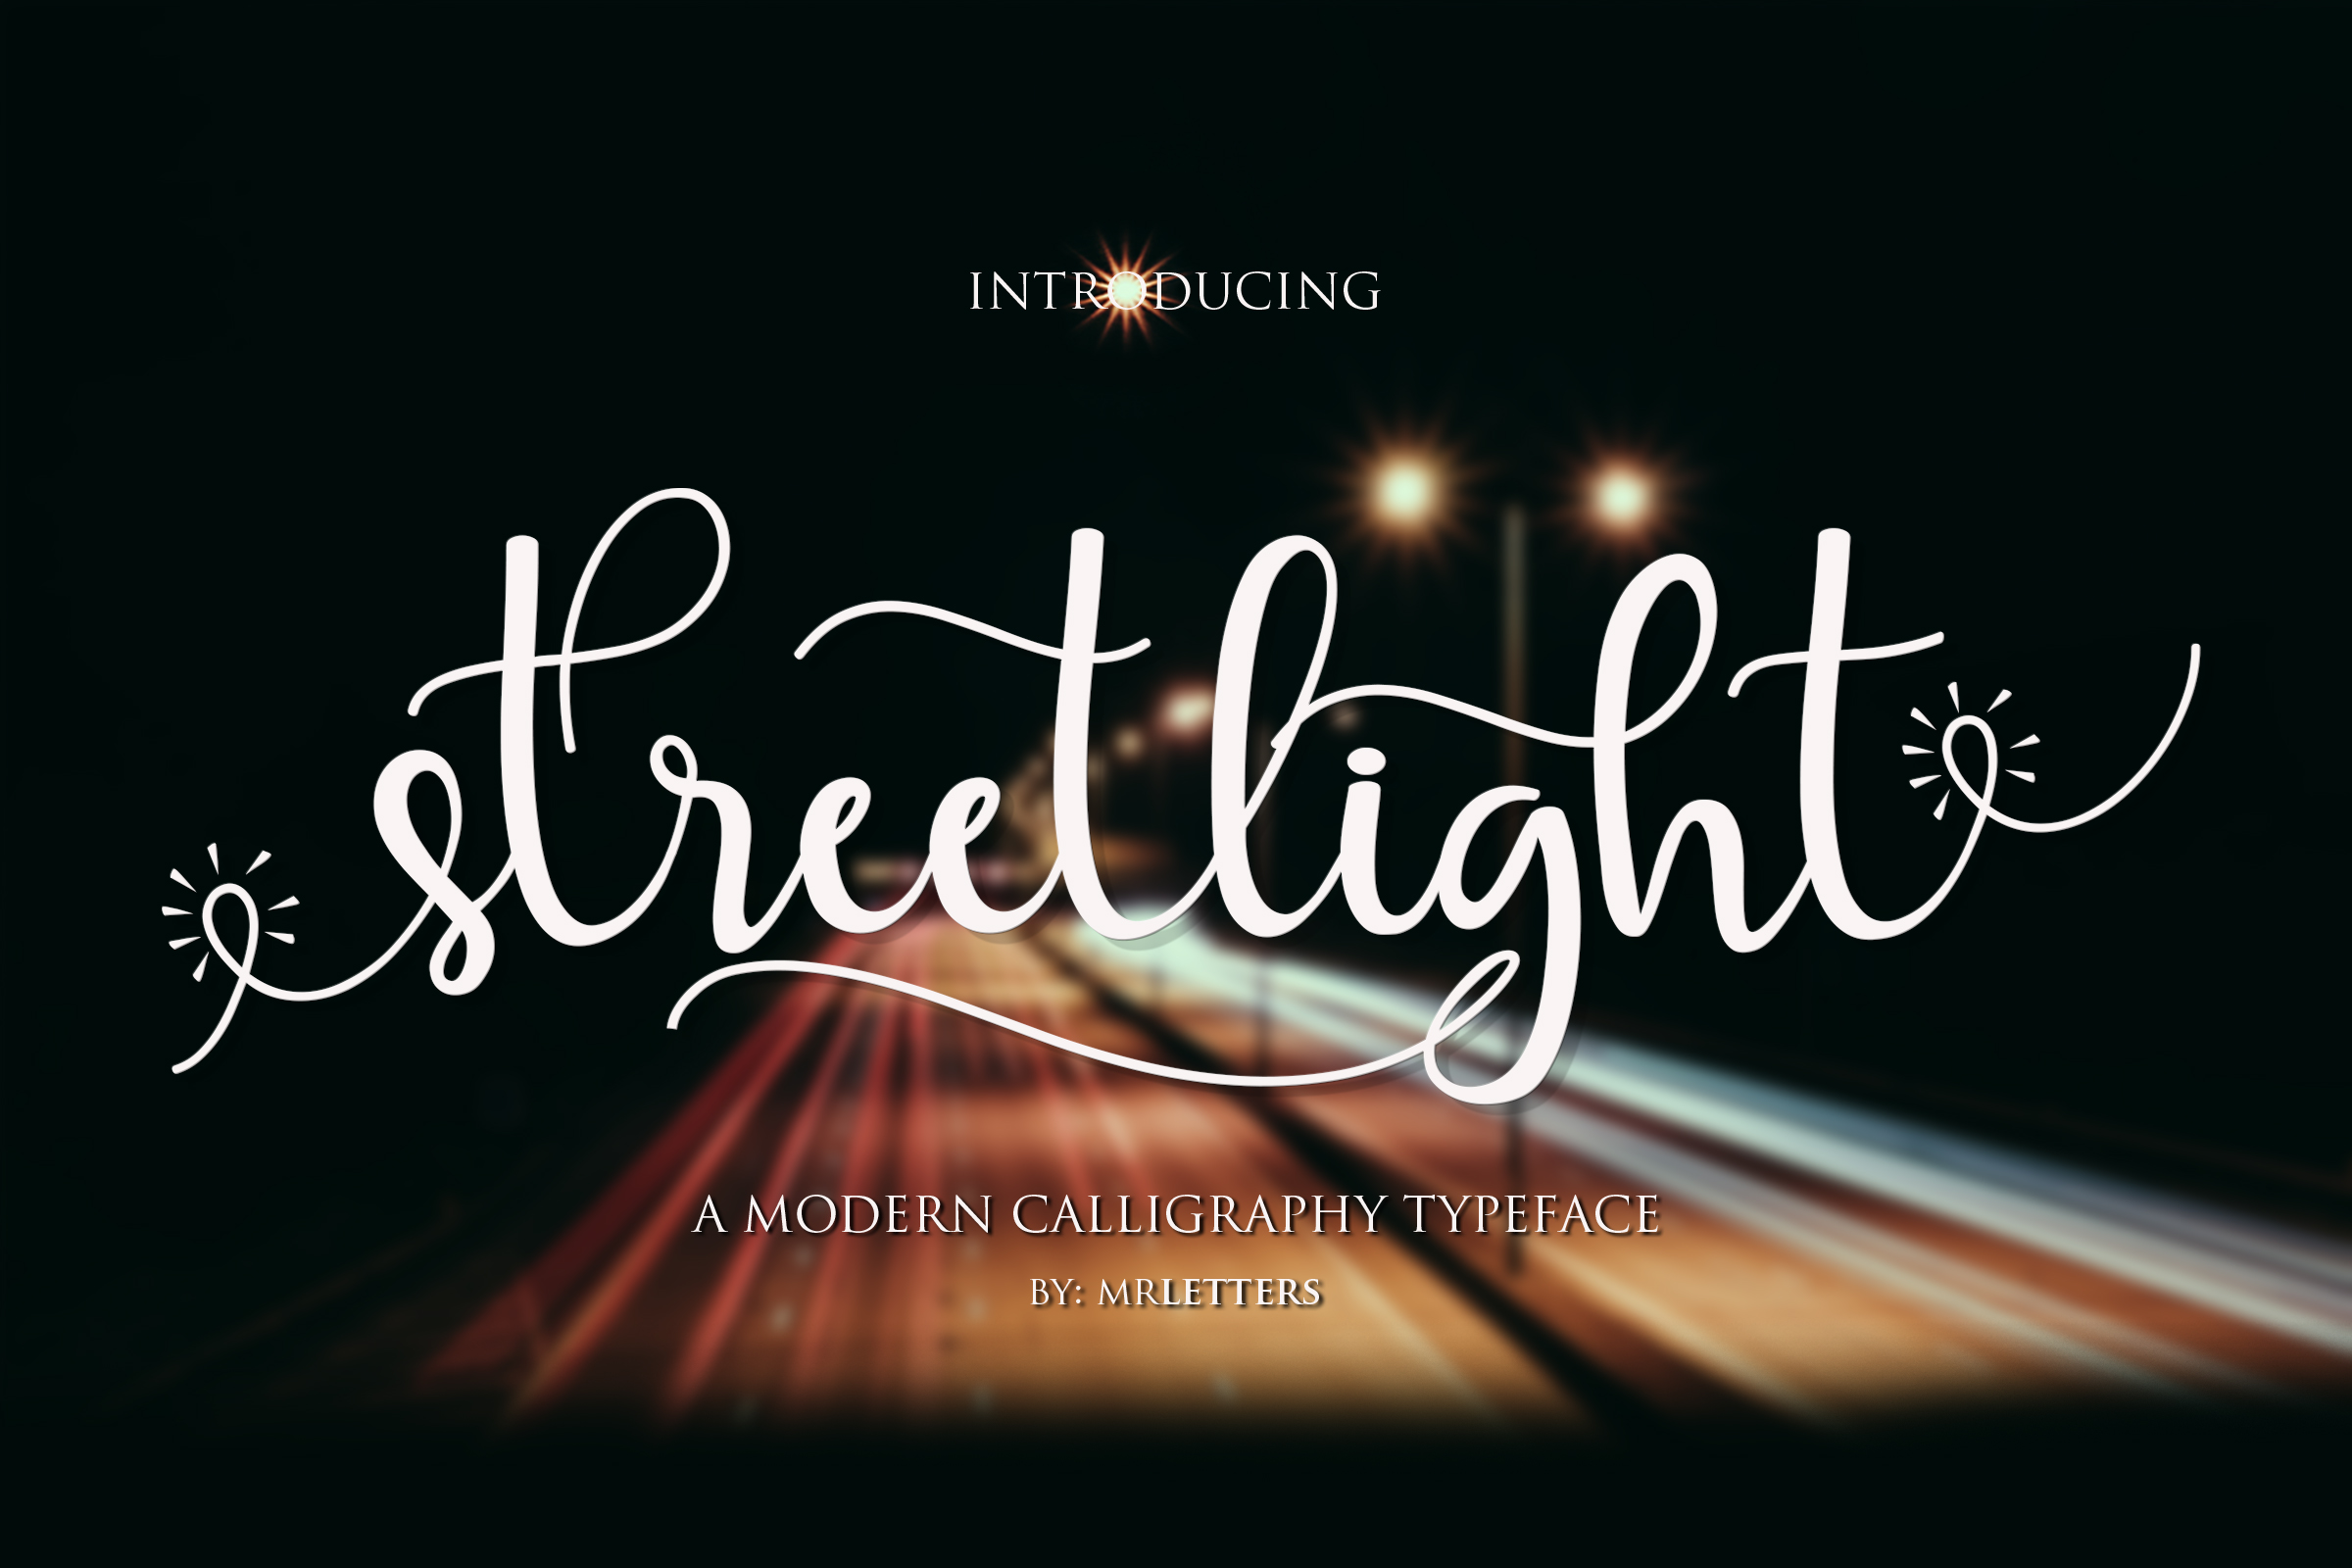 Streetlight Font By Mrletters Image 2